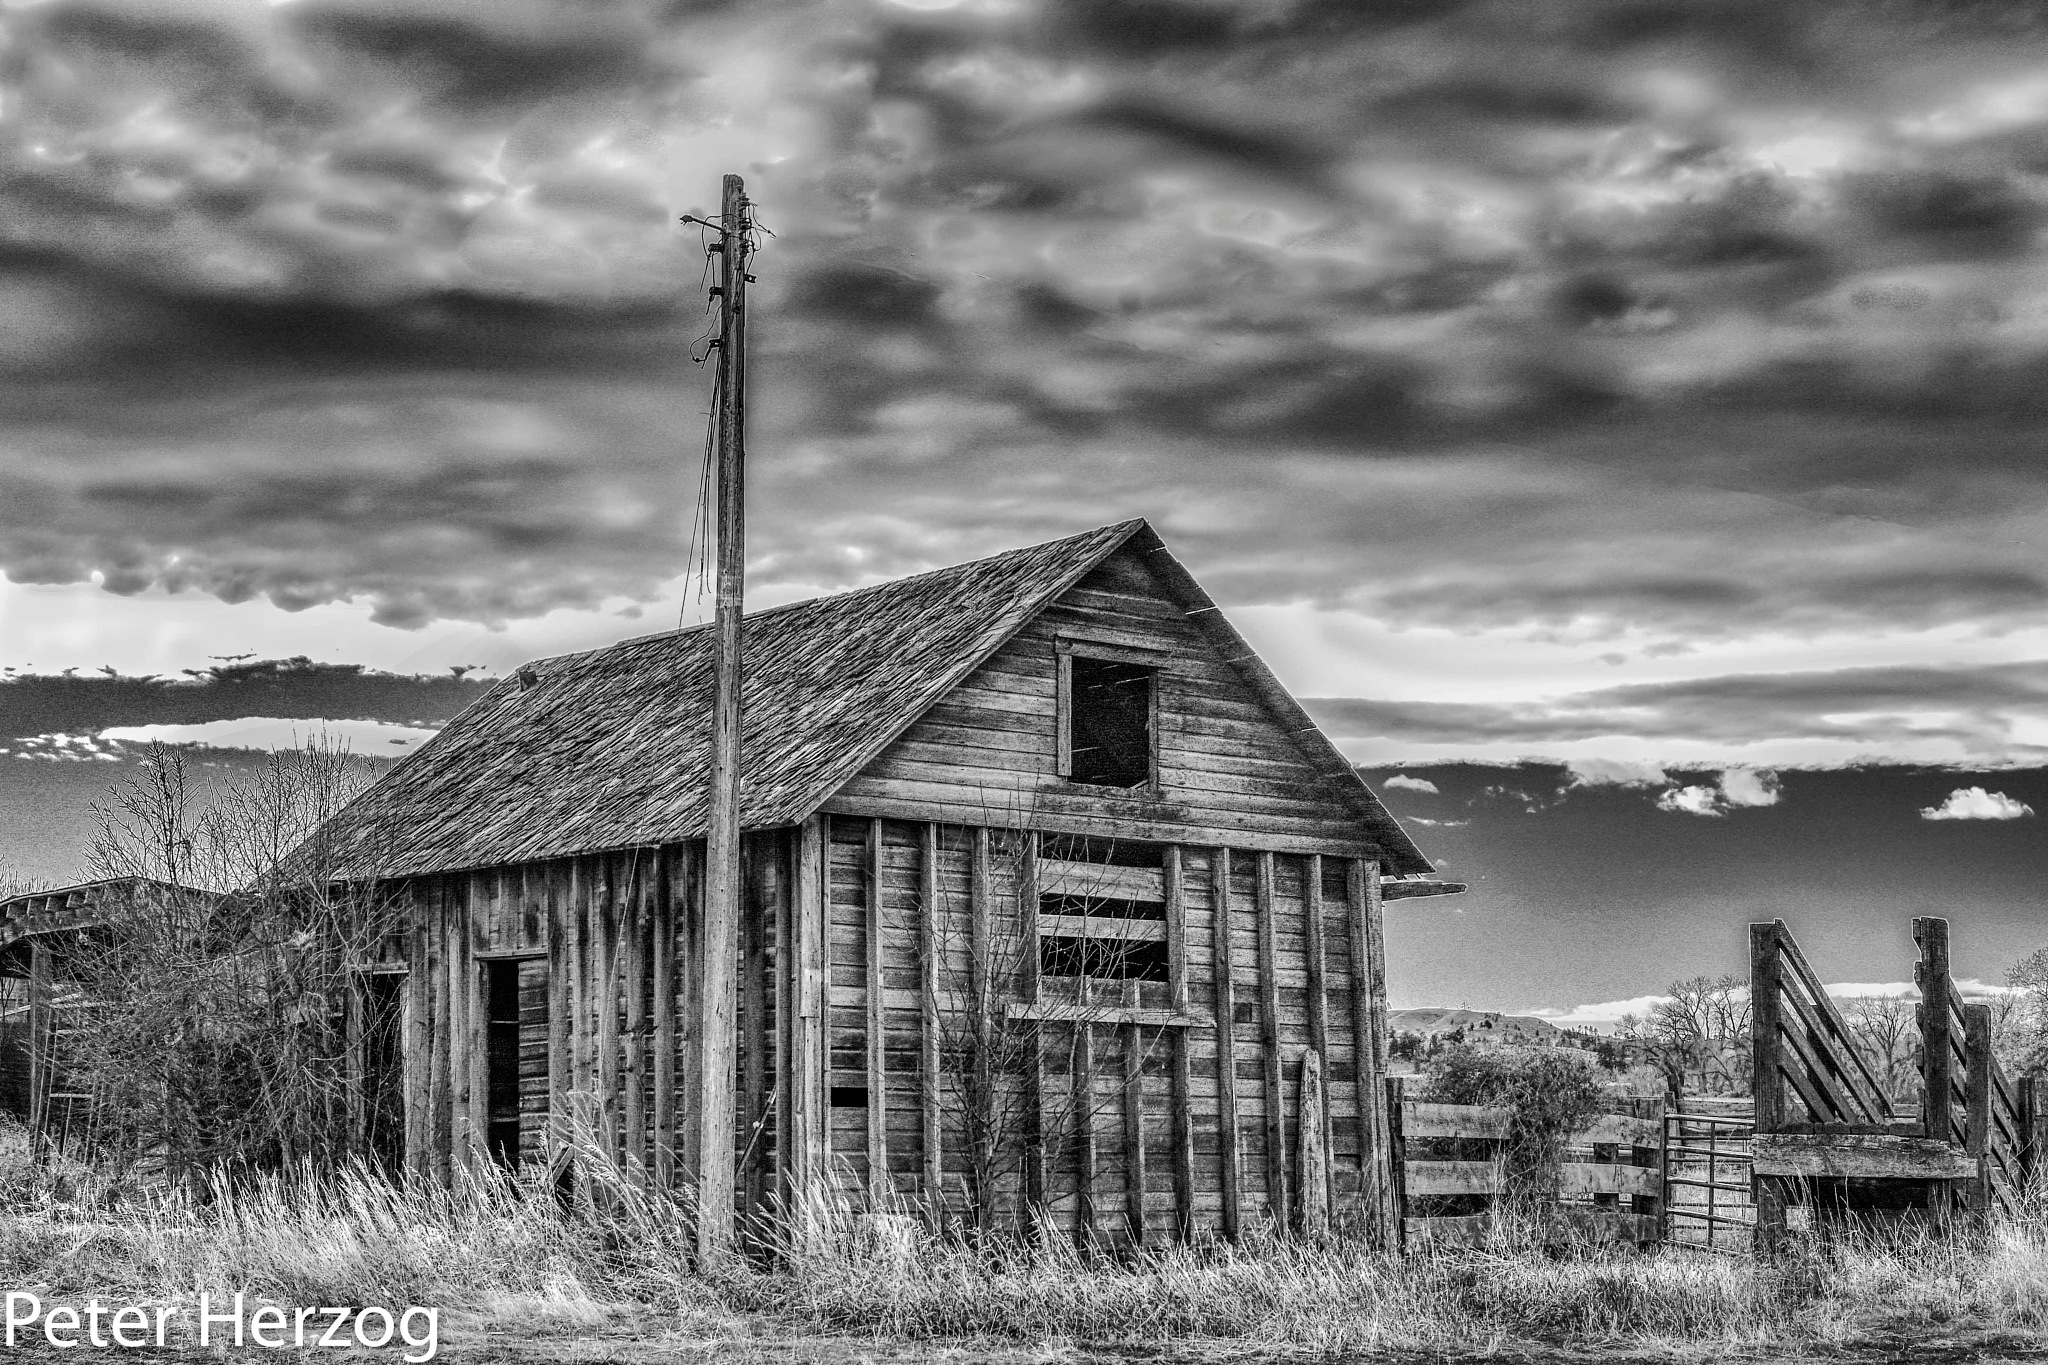 Light Pole and Shed by peter.herzog.3323